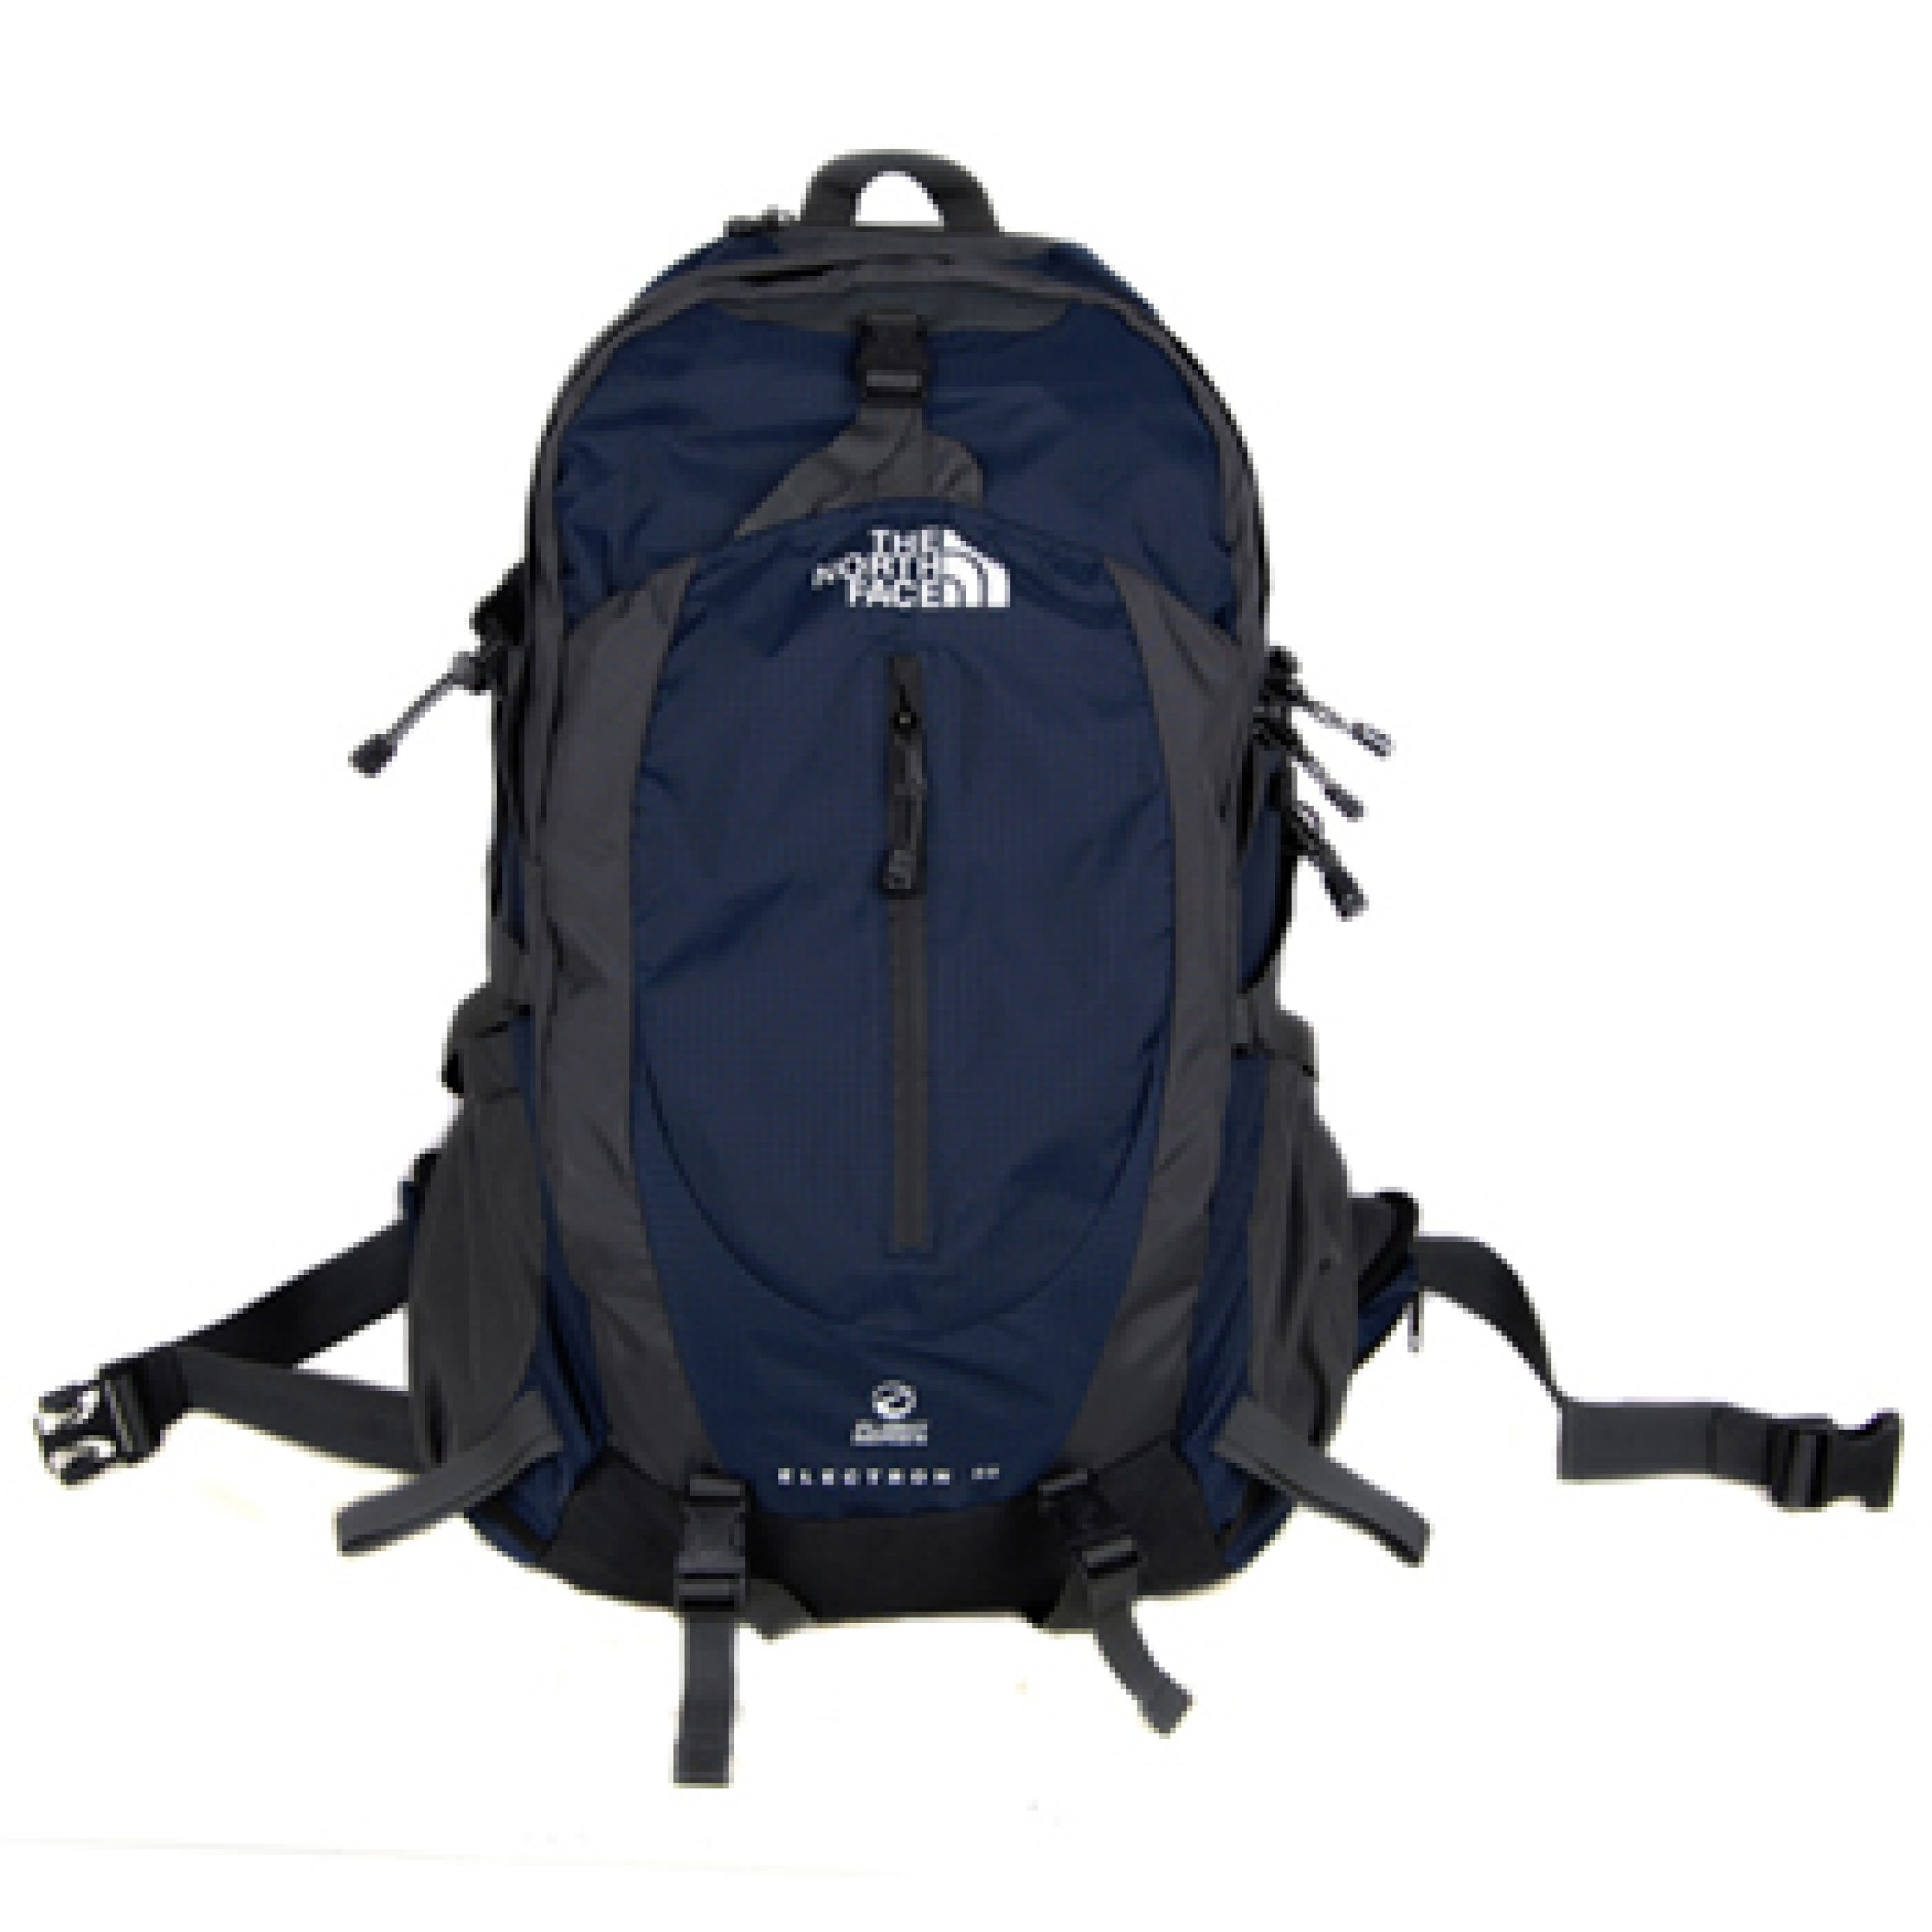 The_North_Face_Electron_40_Backpack__43_LRG.jpg